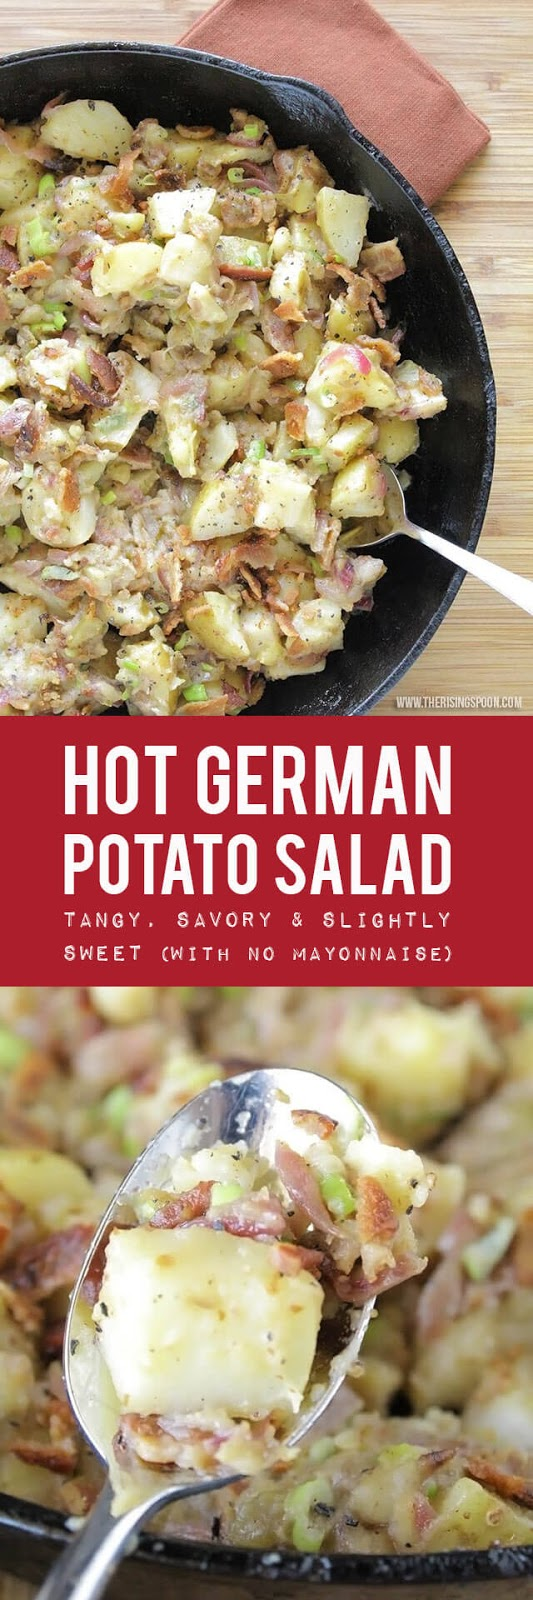 Easy Hot German Potato Salad Recipe